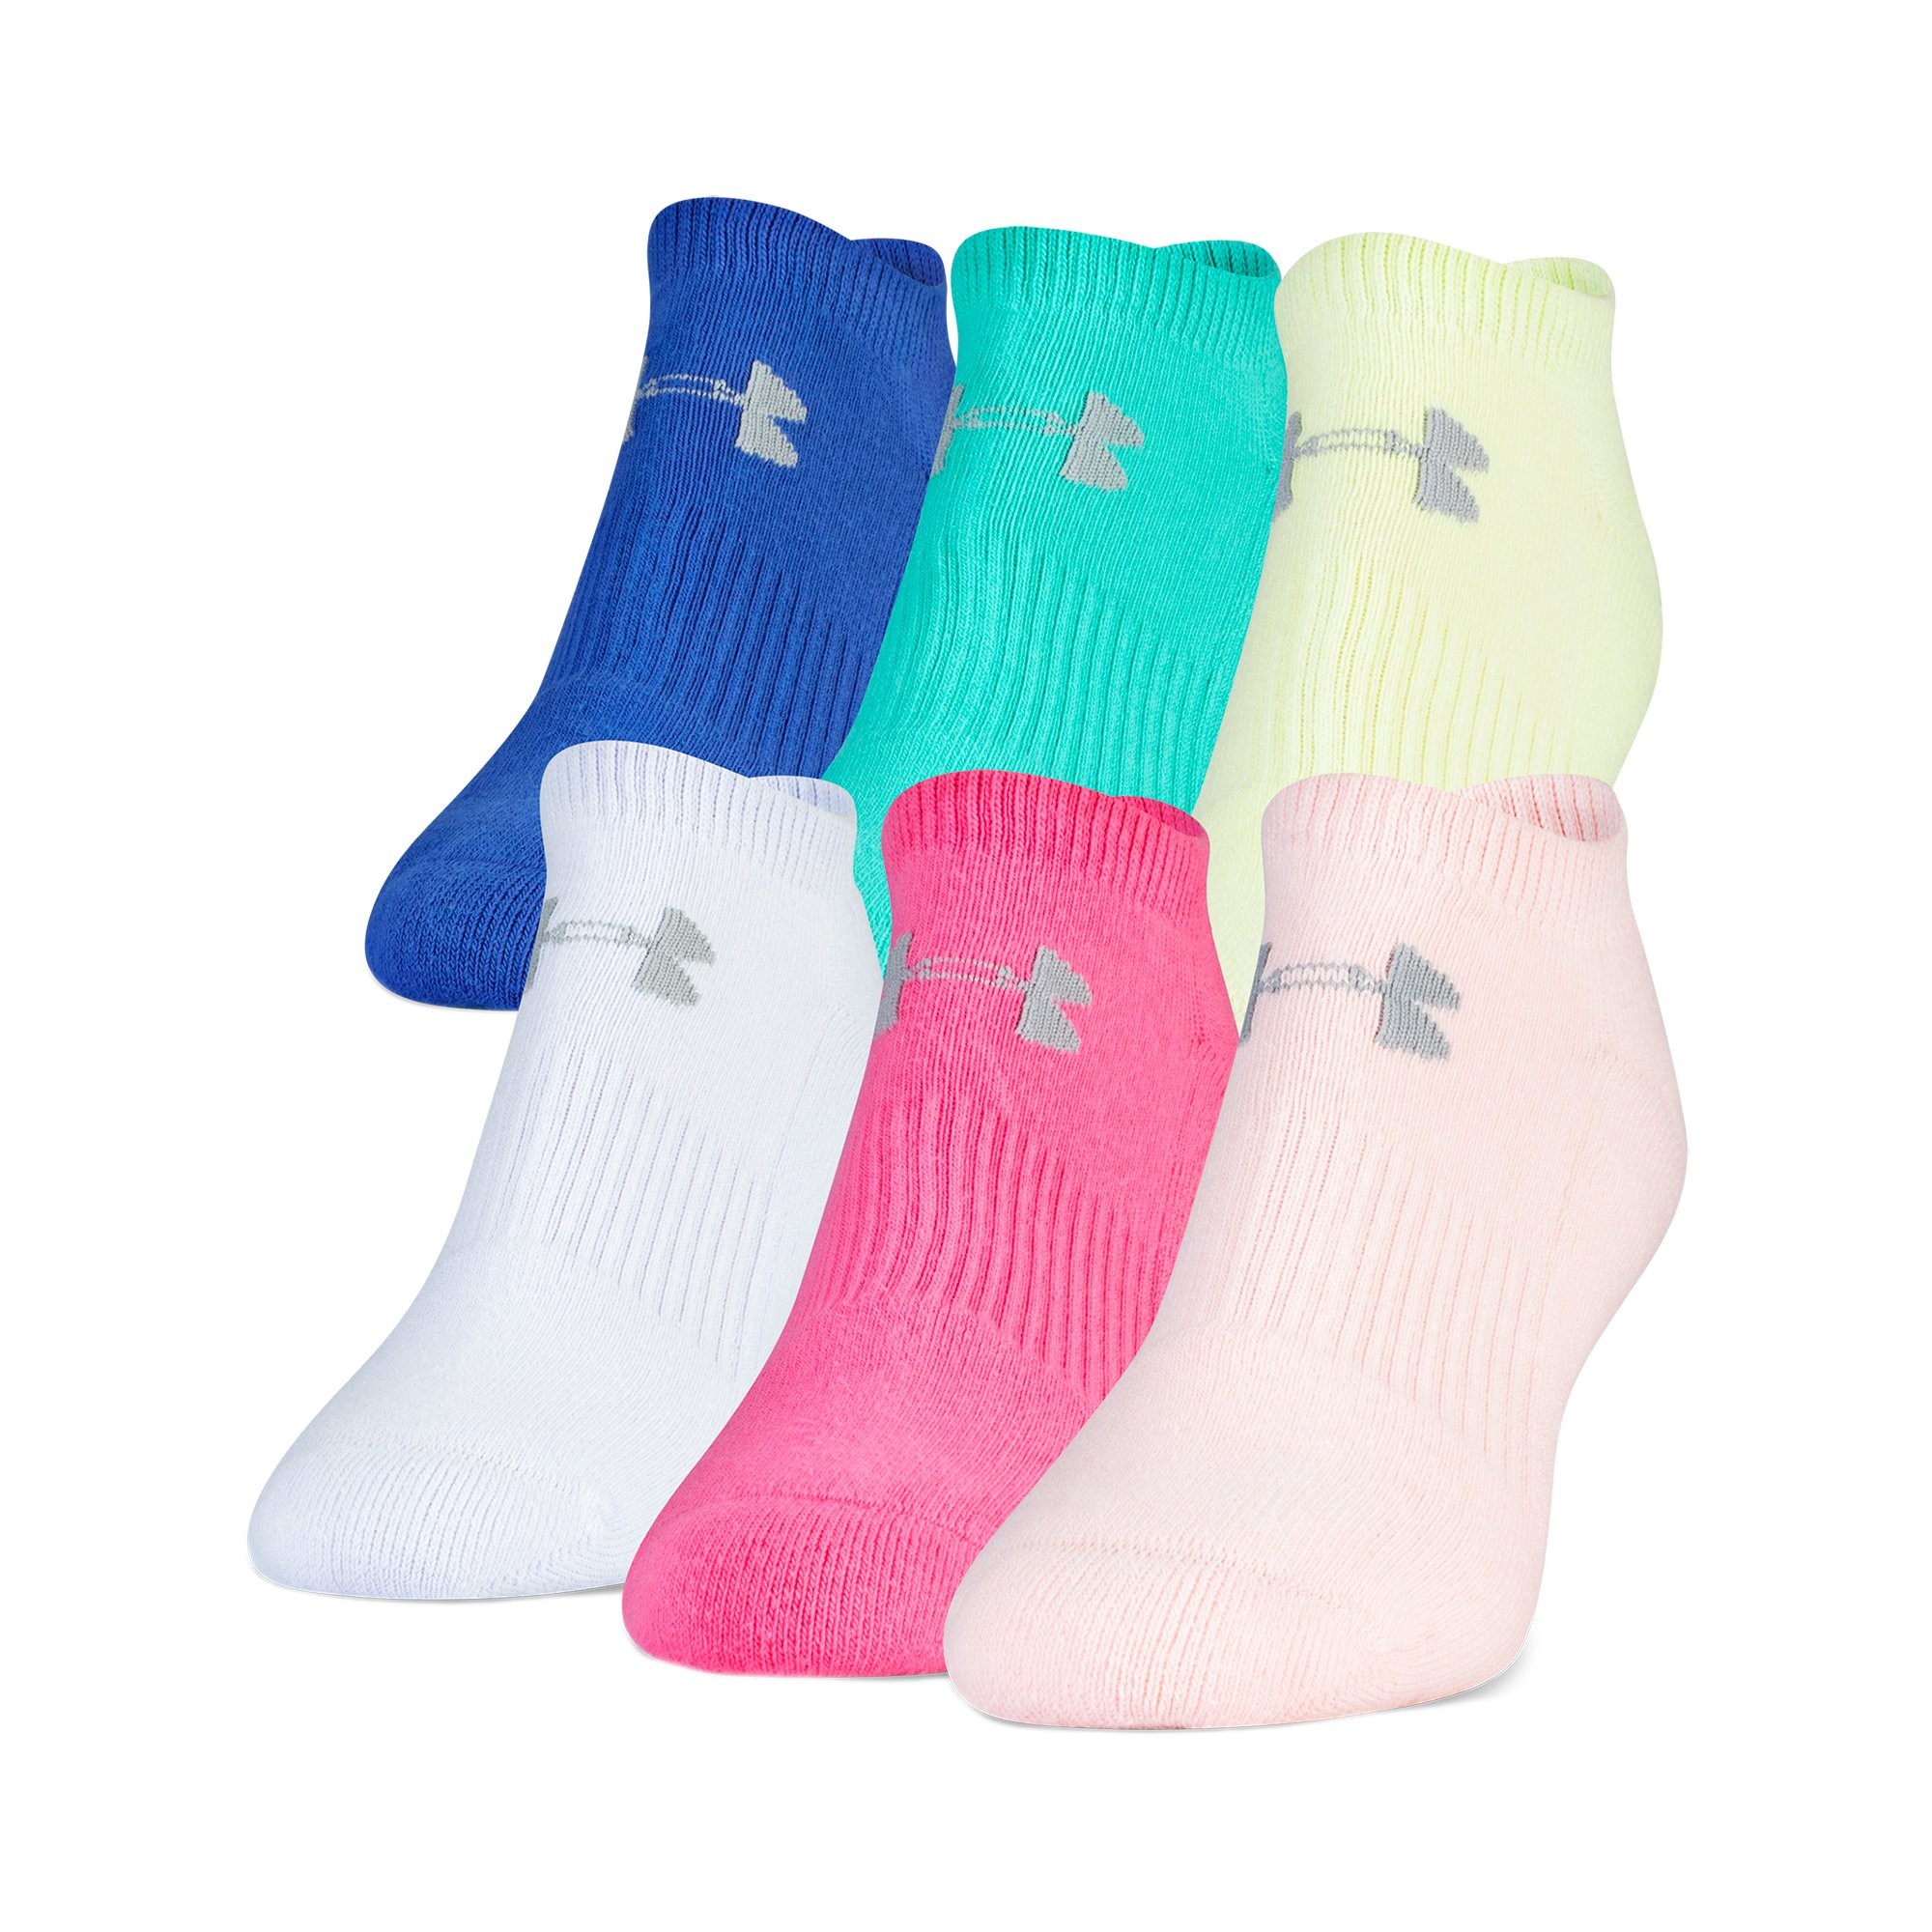 Under Armour Charged Cotton 2.0 No Show Socks, 6 Pairs, Color Assorted, Medium